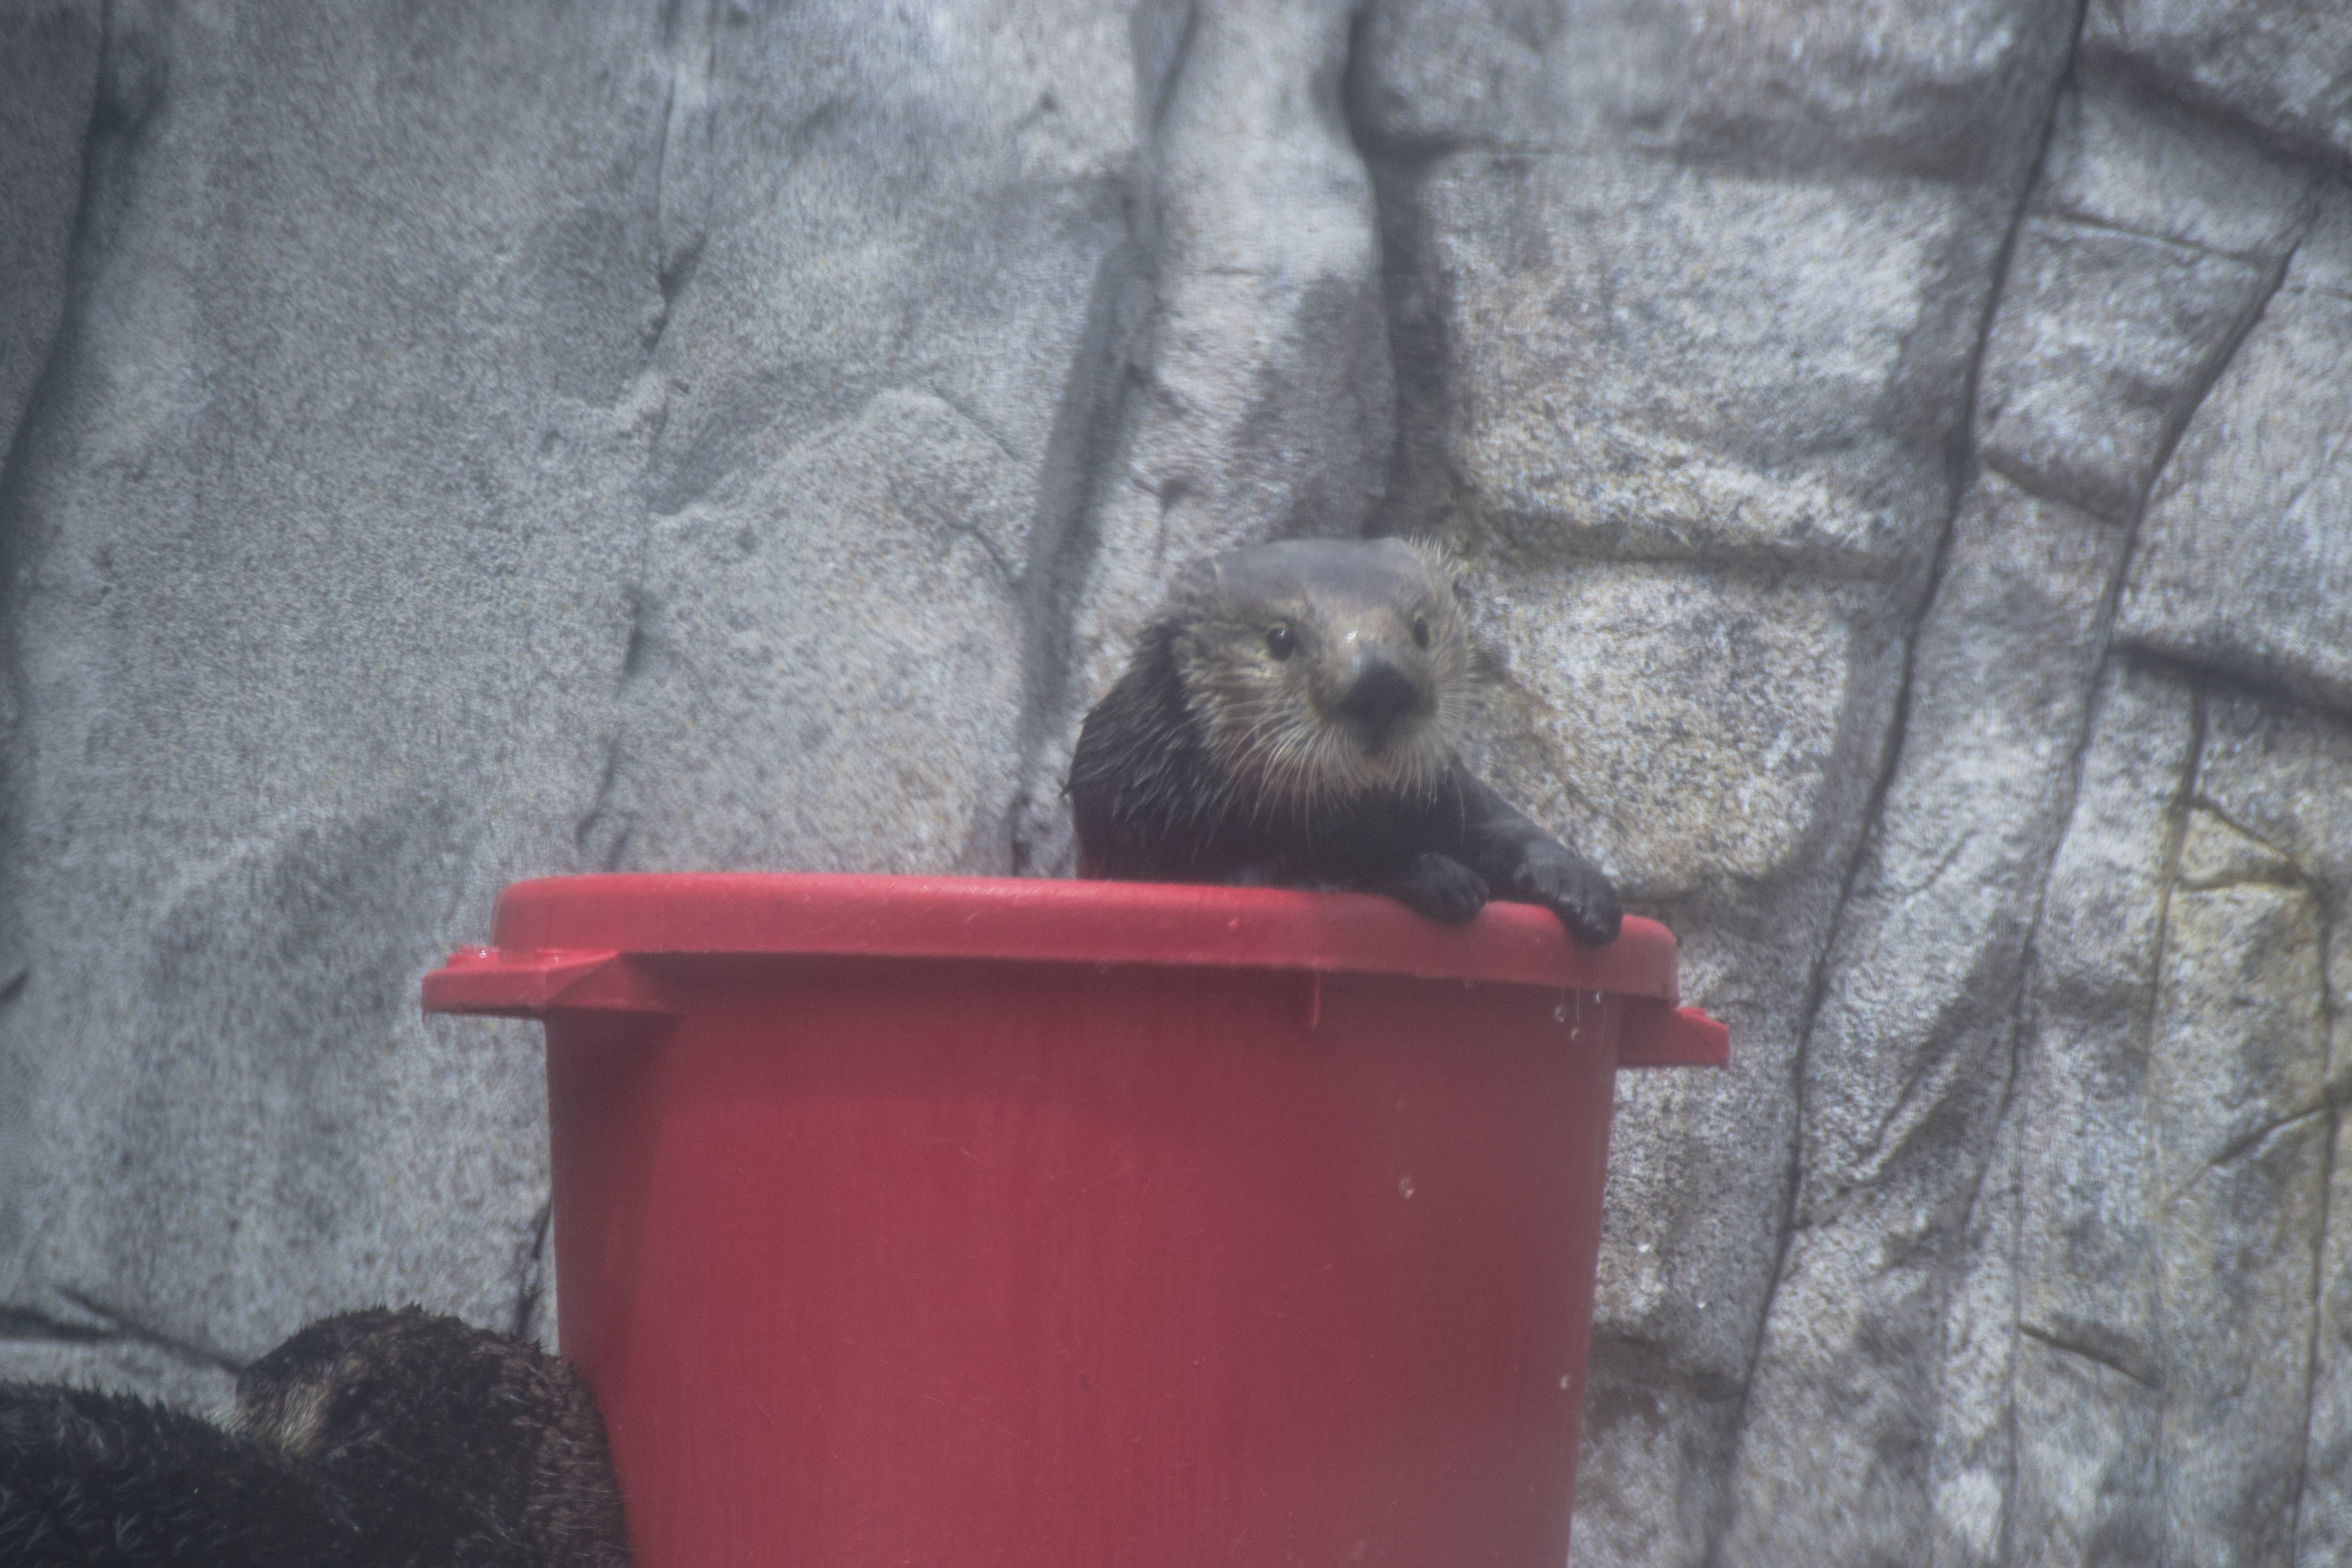 I'm in My Bucket. Nooo, Don't Pull Me Out of My Bucket! 1